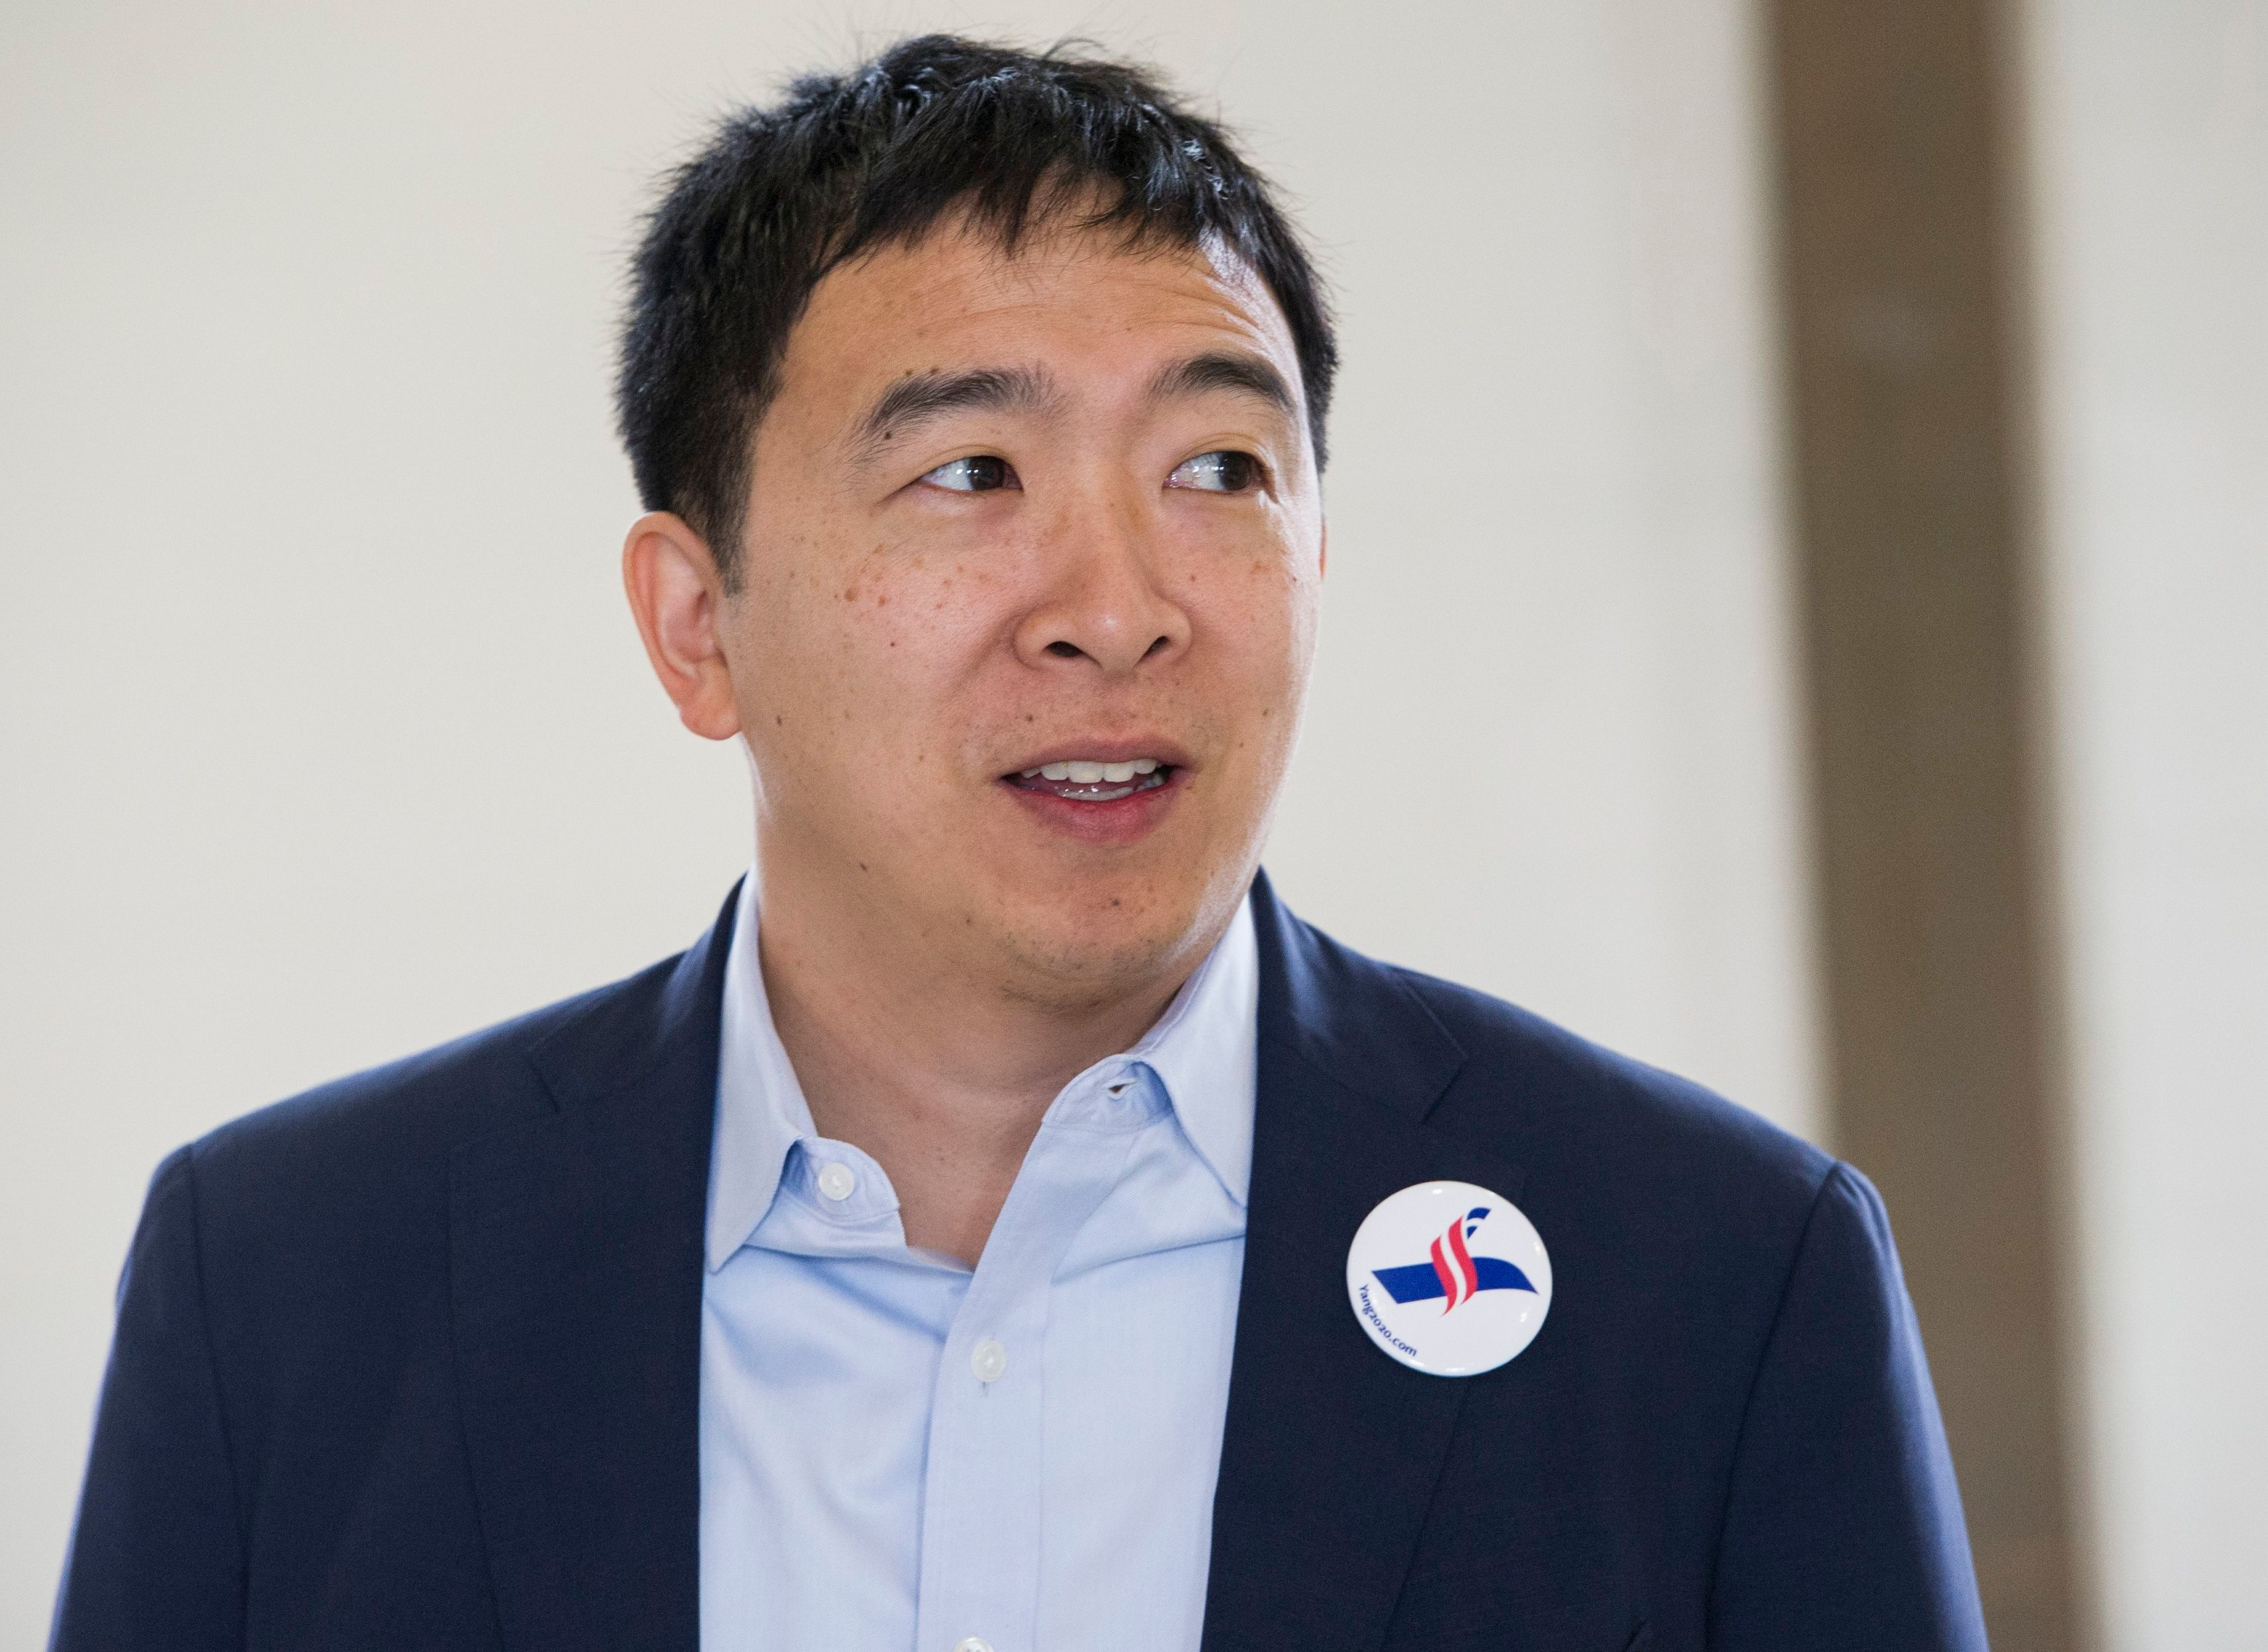 What Is Going on With Andrew Yang's Candidacy?